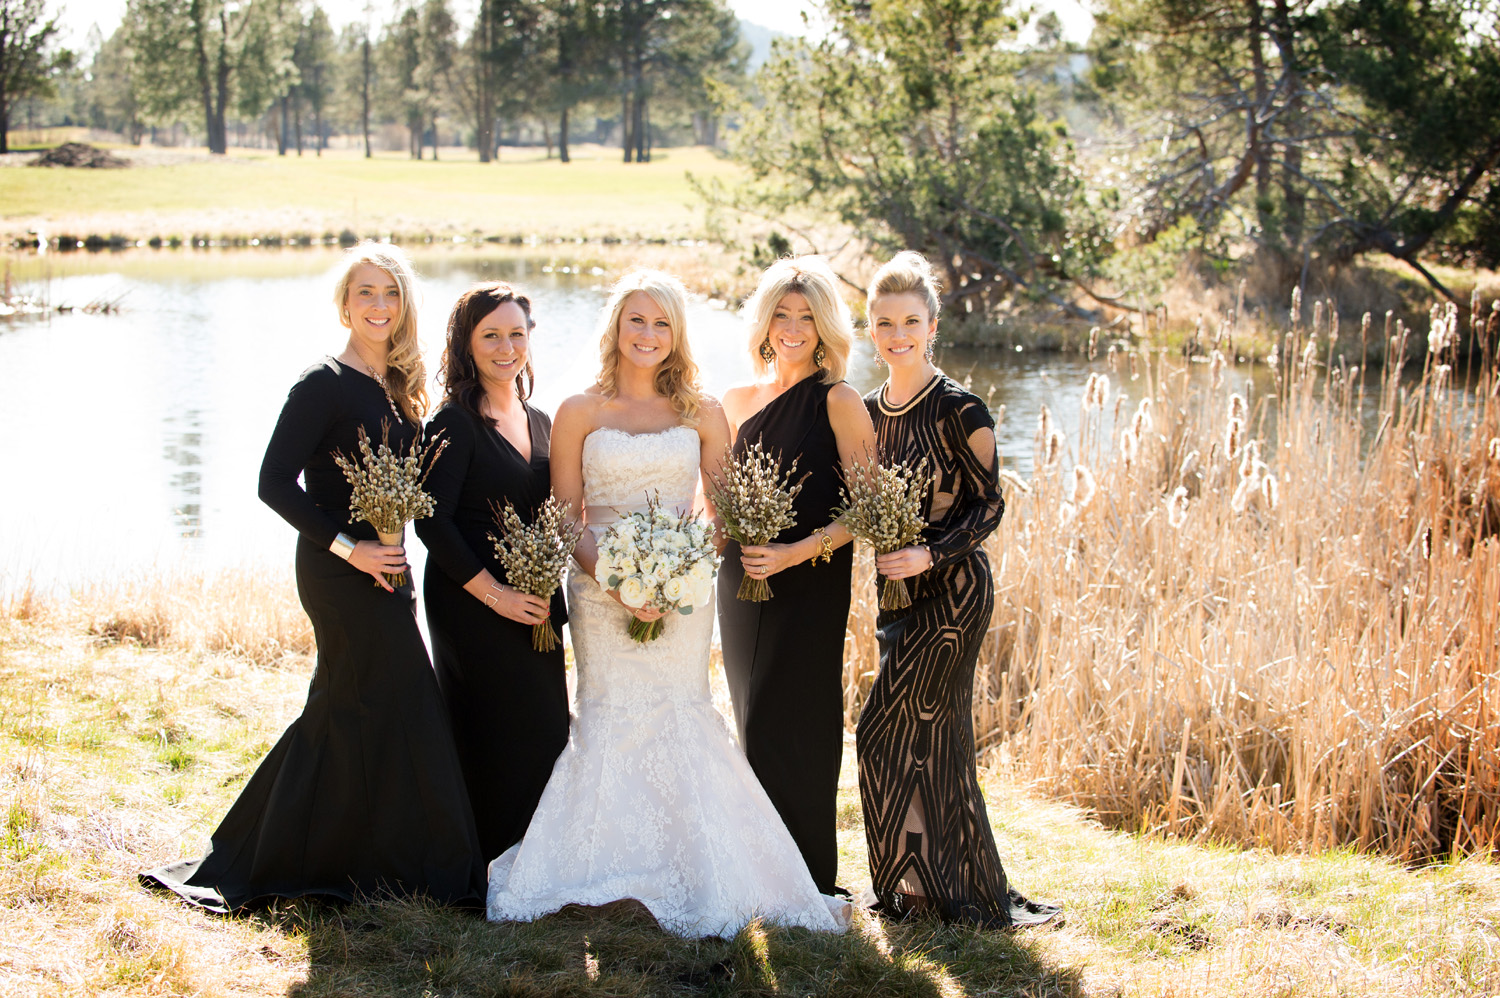 Bridalbliss.com | Portland Wedding | Central Oregon Event Planning and Design | Kimberly Kay Photography | Zest Floral